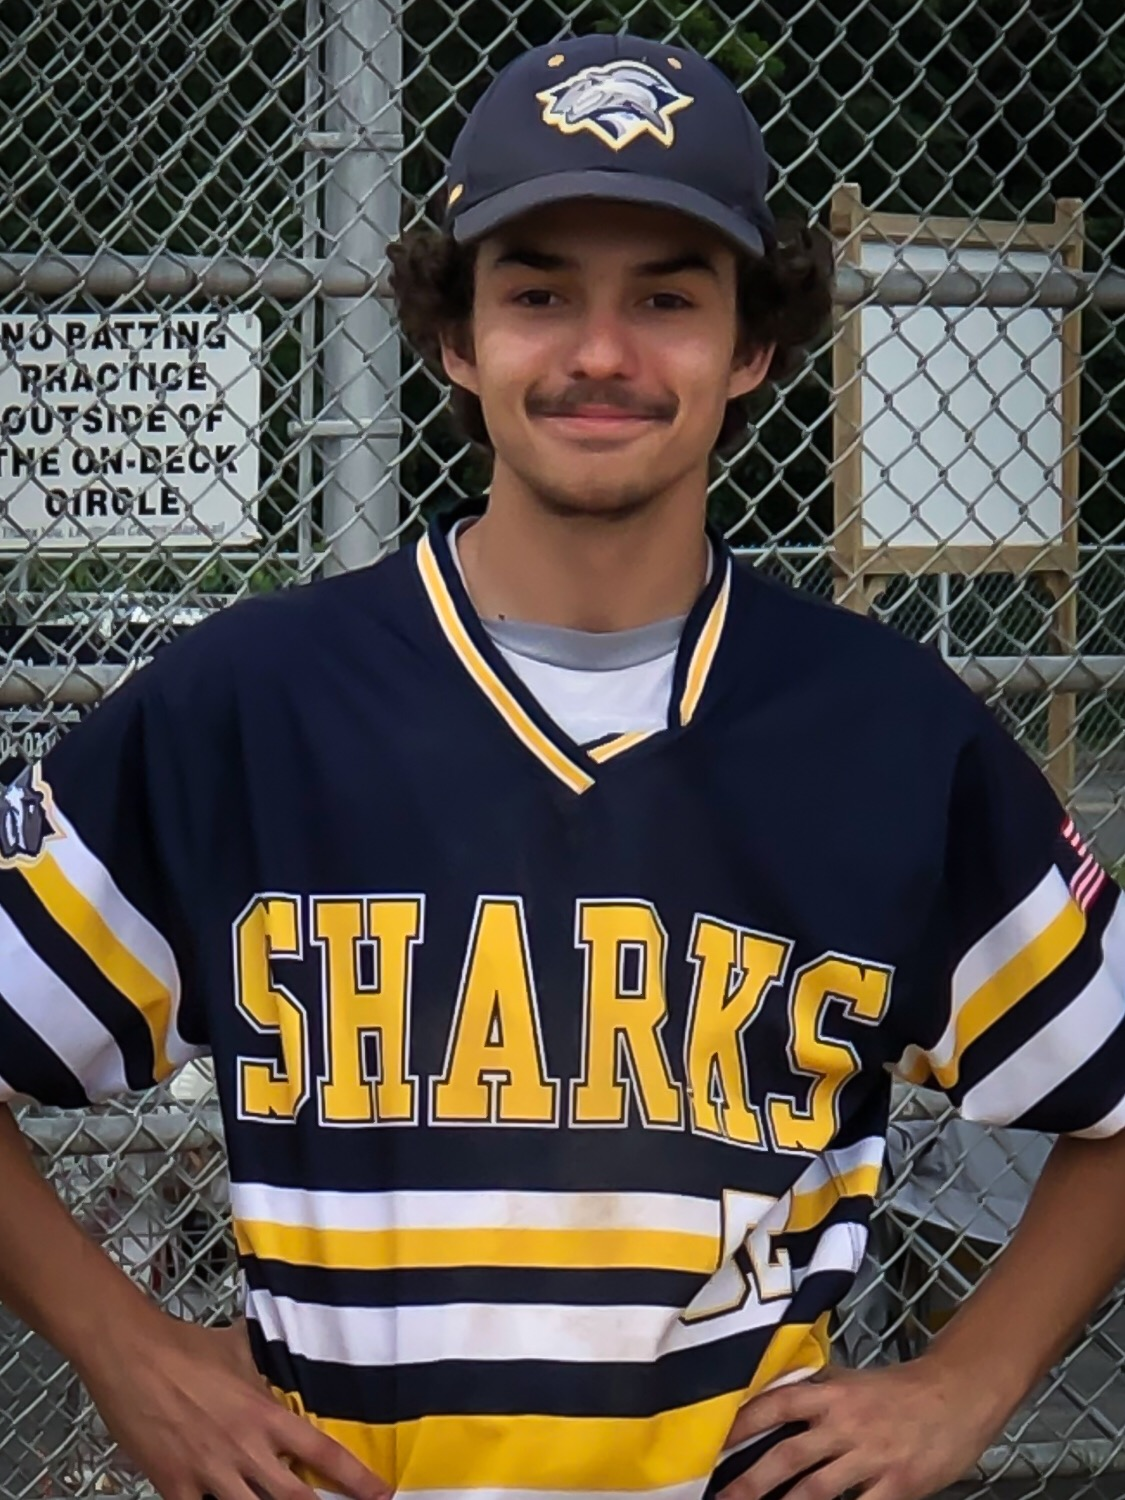 HiCast User and South Shore Sharks Left Fielder, Darren Fullone II